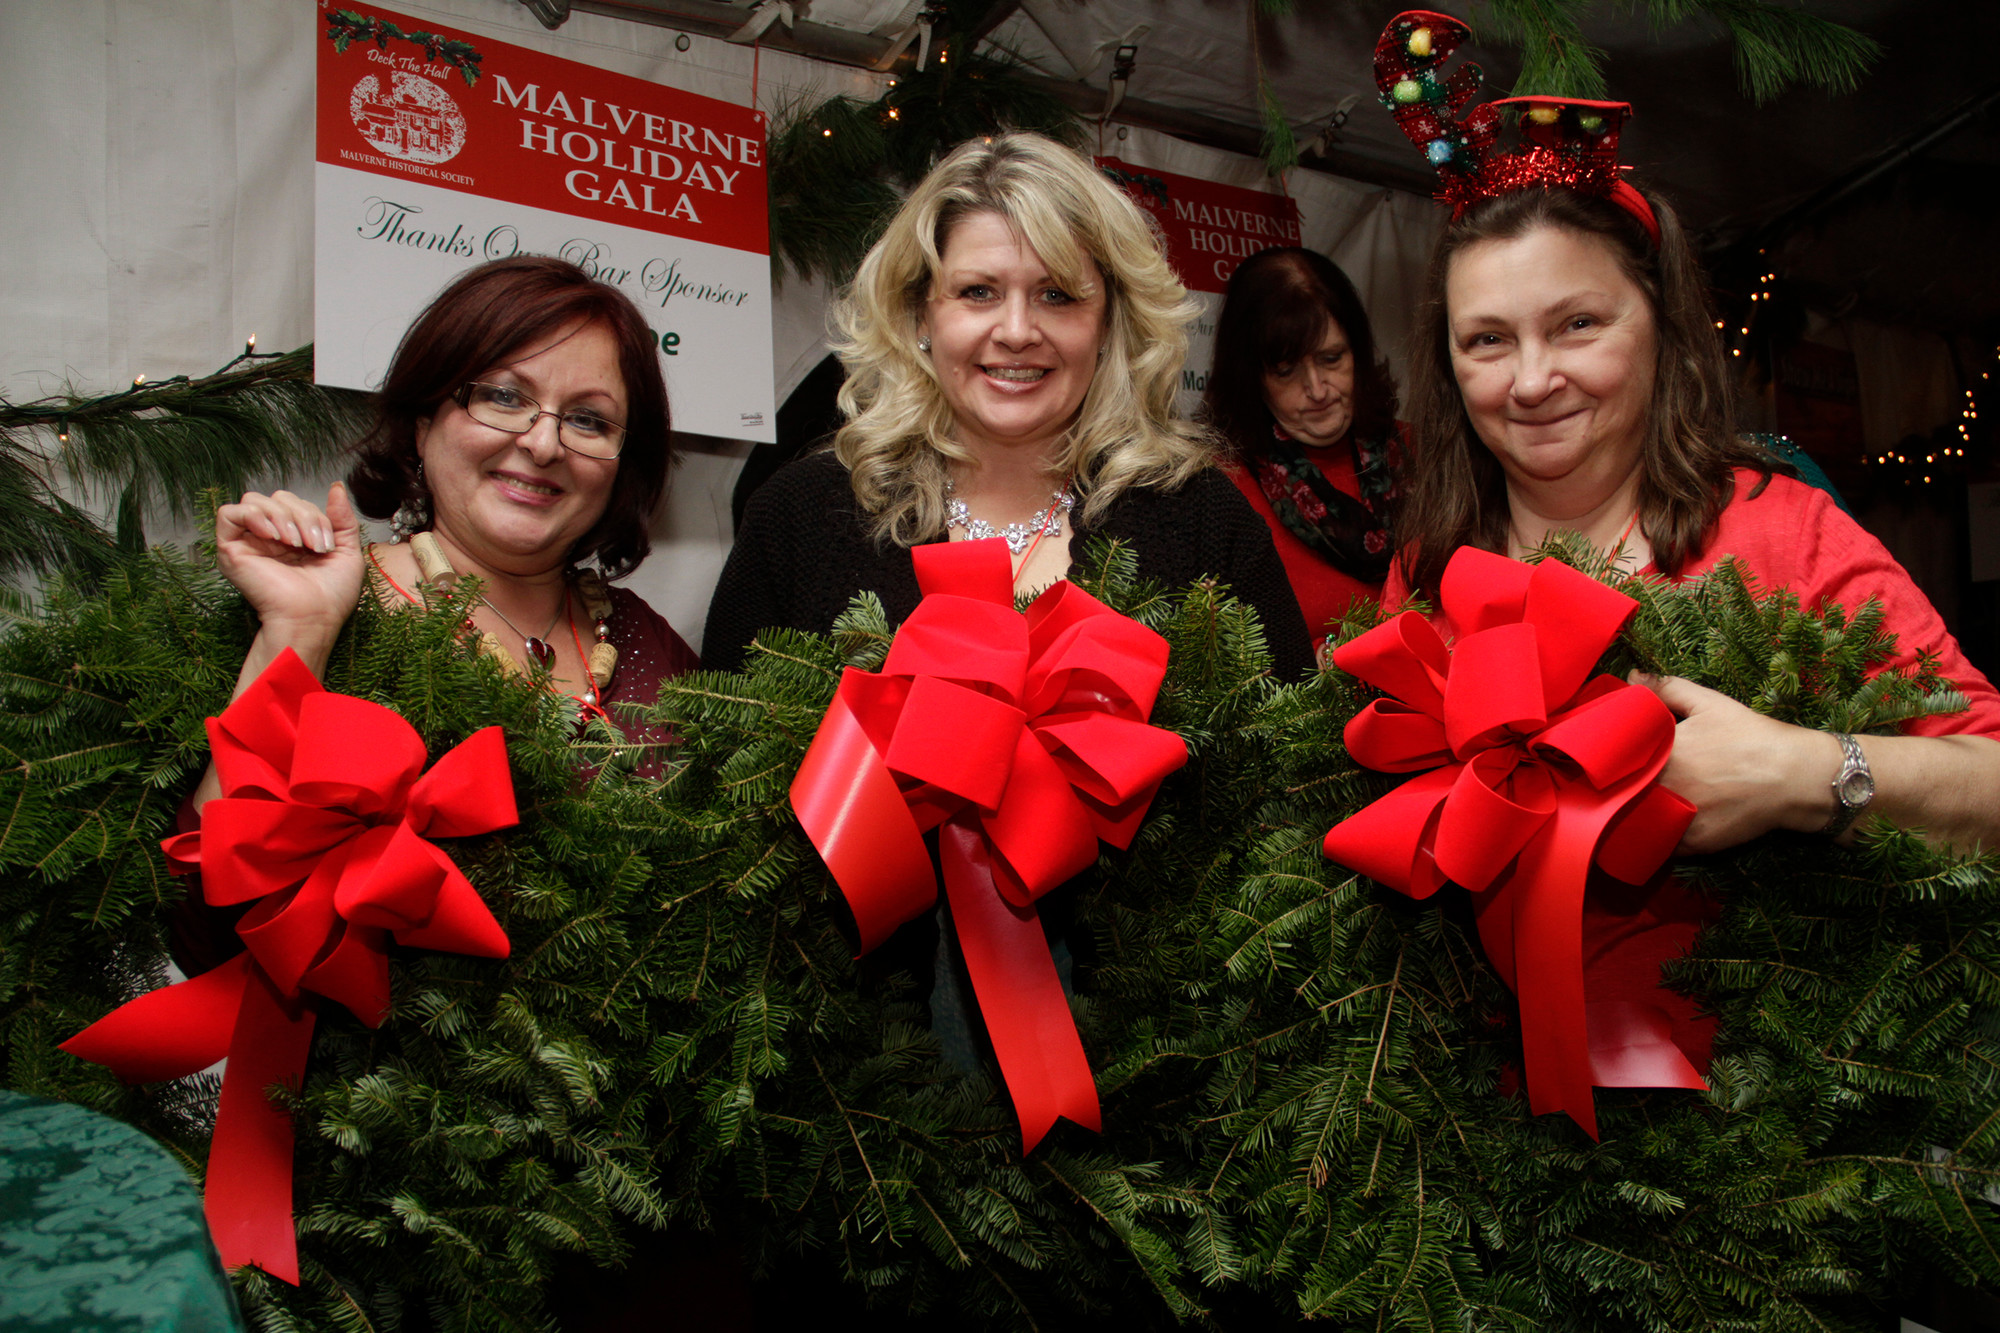 Liz Berger, Alison Lorch and Laurie Lerner, winners of a holiday wreath door prize at the Malverne Historical Society's Holiday Gala.